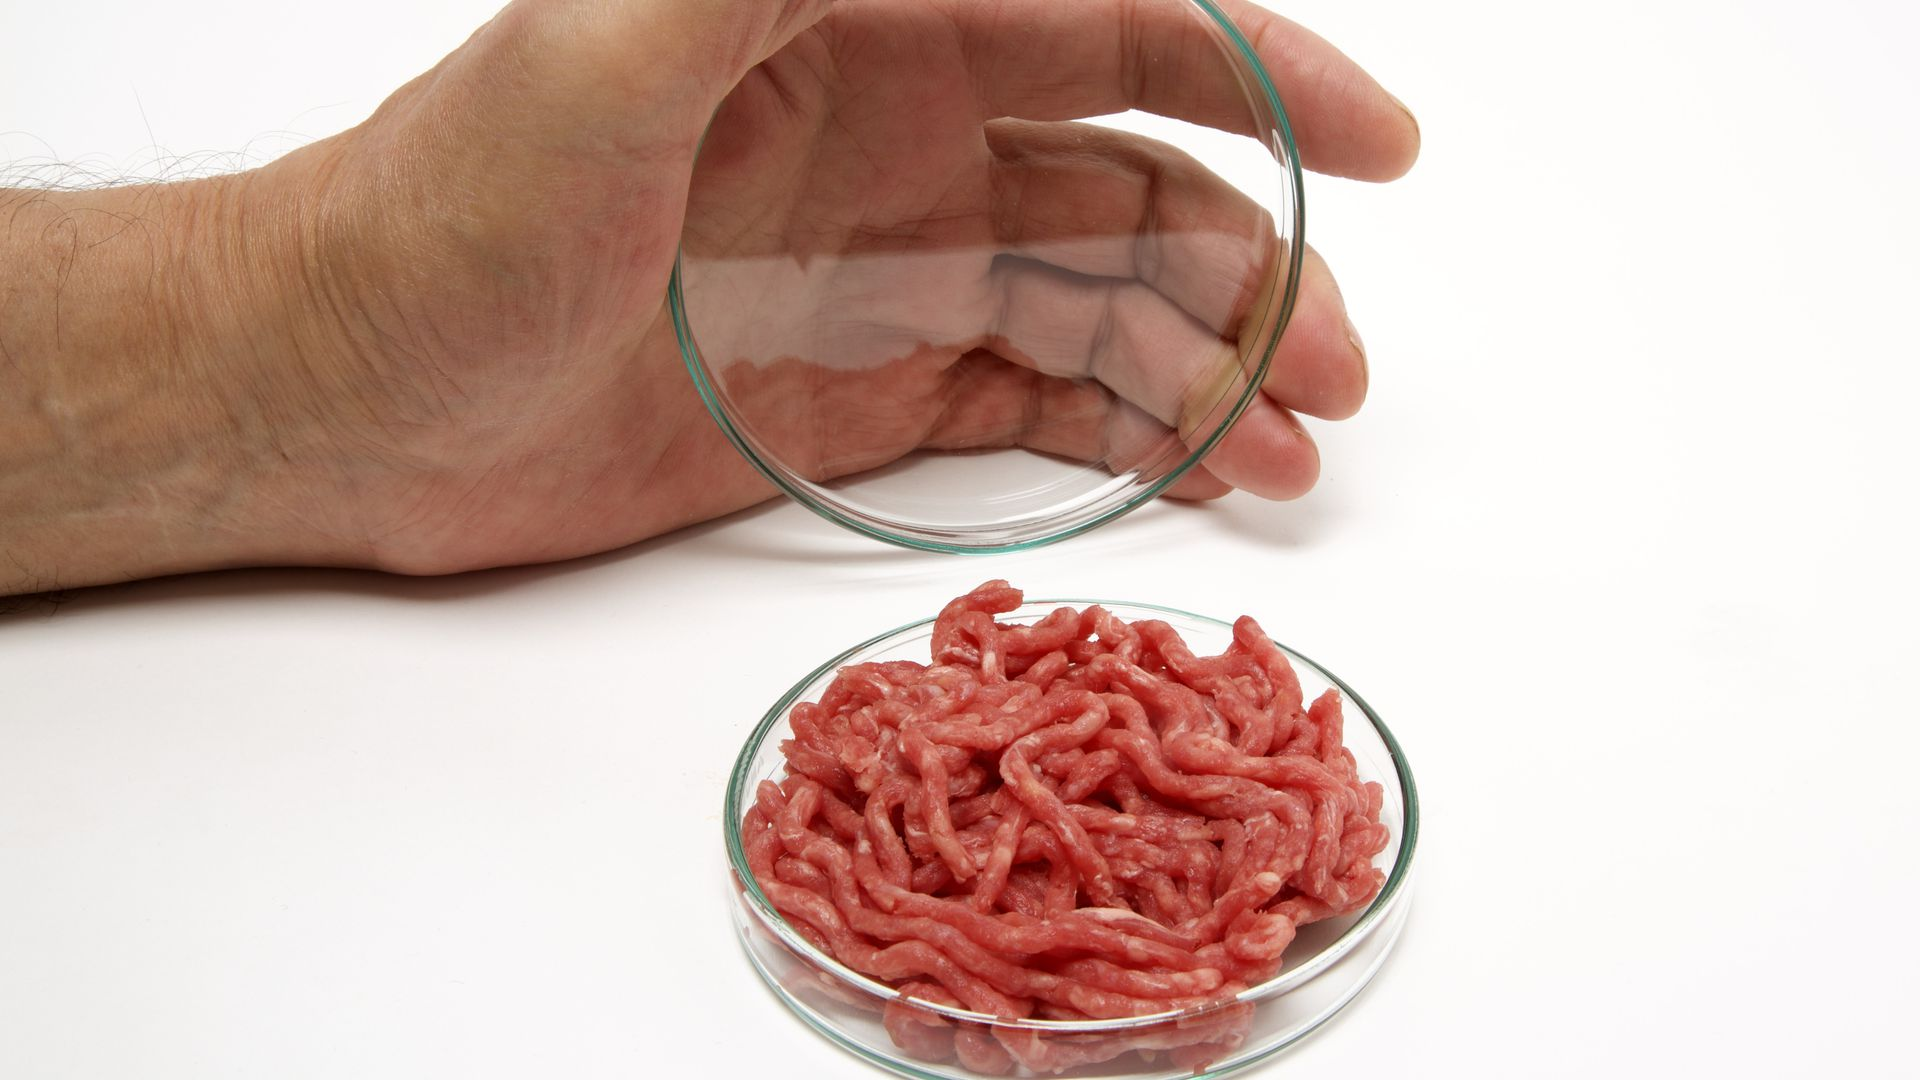 Ground beef in a petri dish